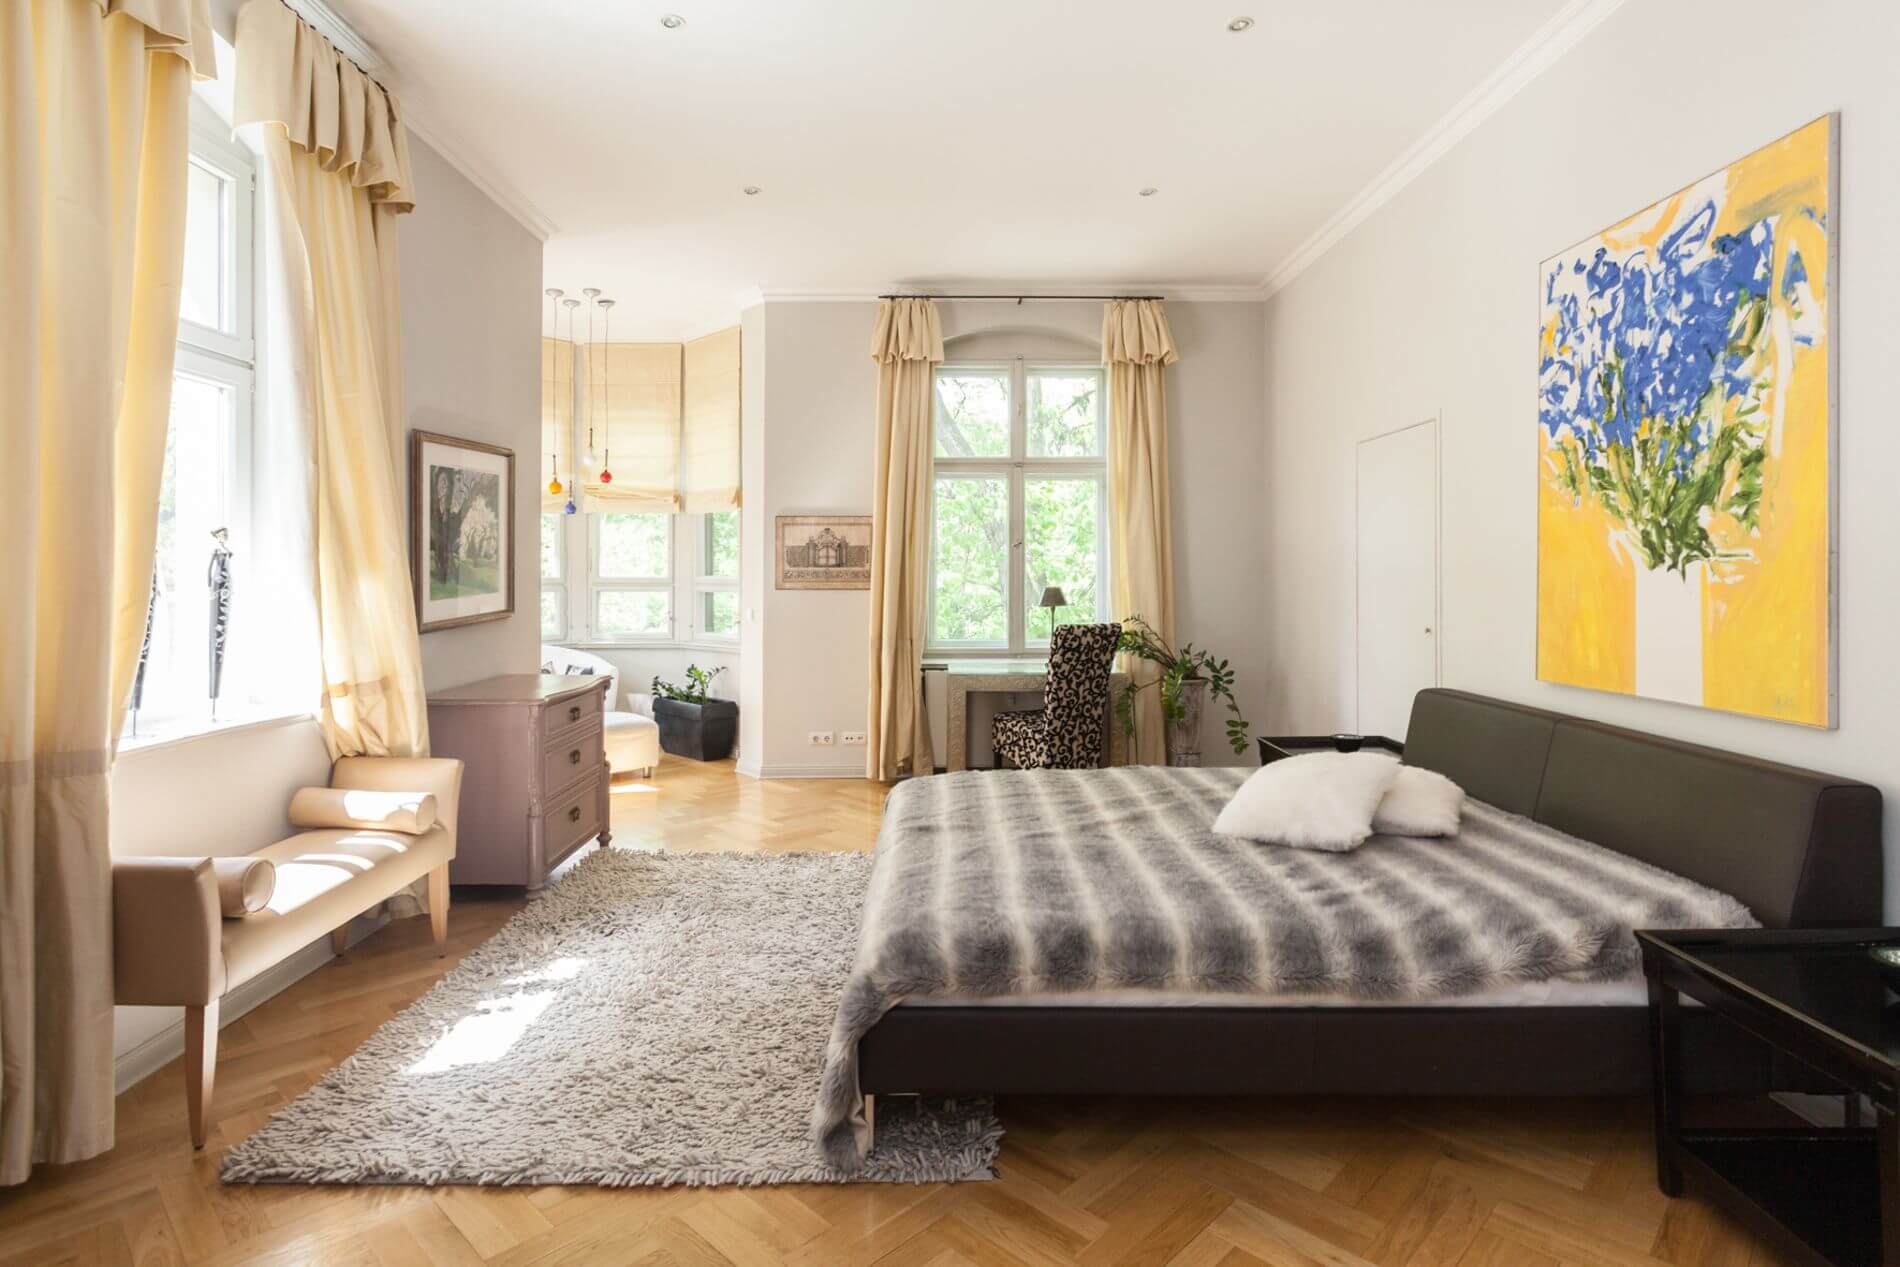 Lovely serviced apartment in Berlin in a green area ideal for short stays